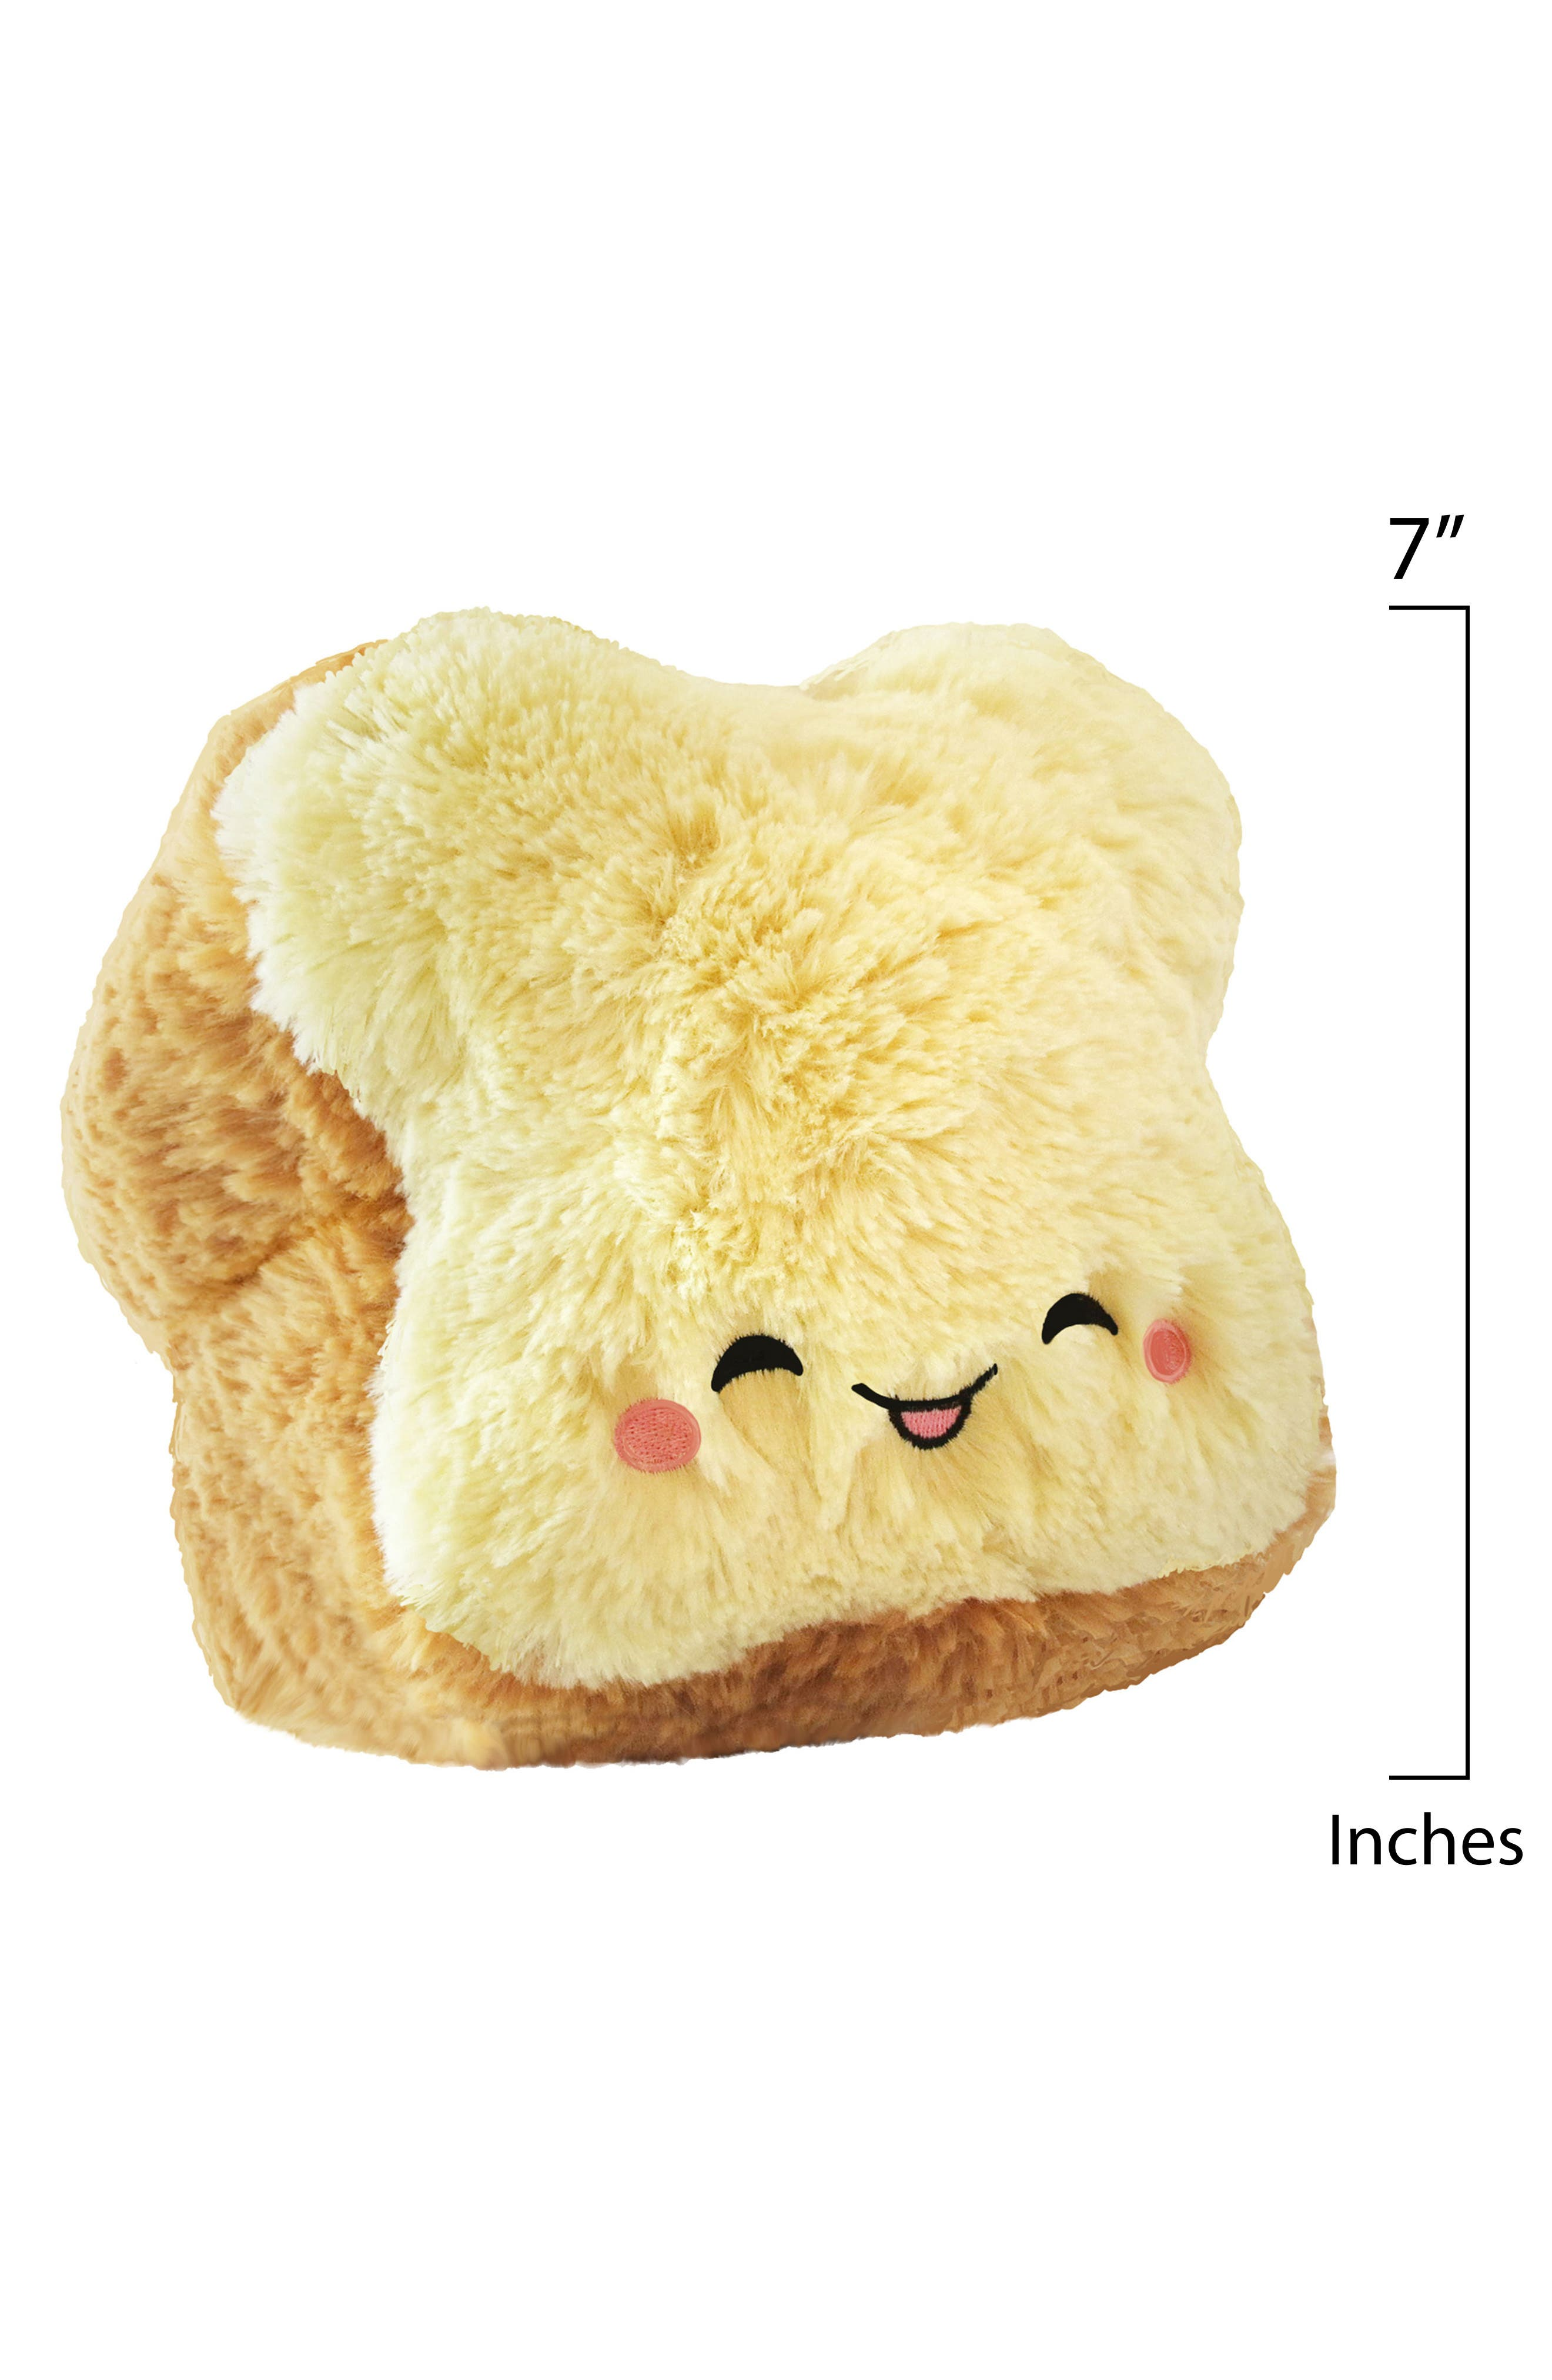 Mini Loaf of Bread Stuffed Toy,                             Alternate thumbnail 2, color,                             200